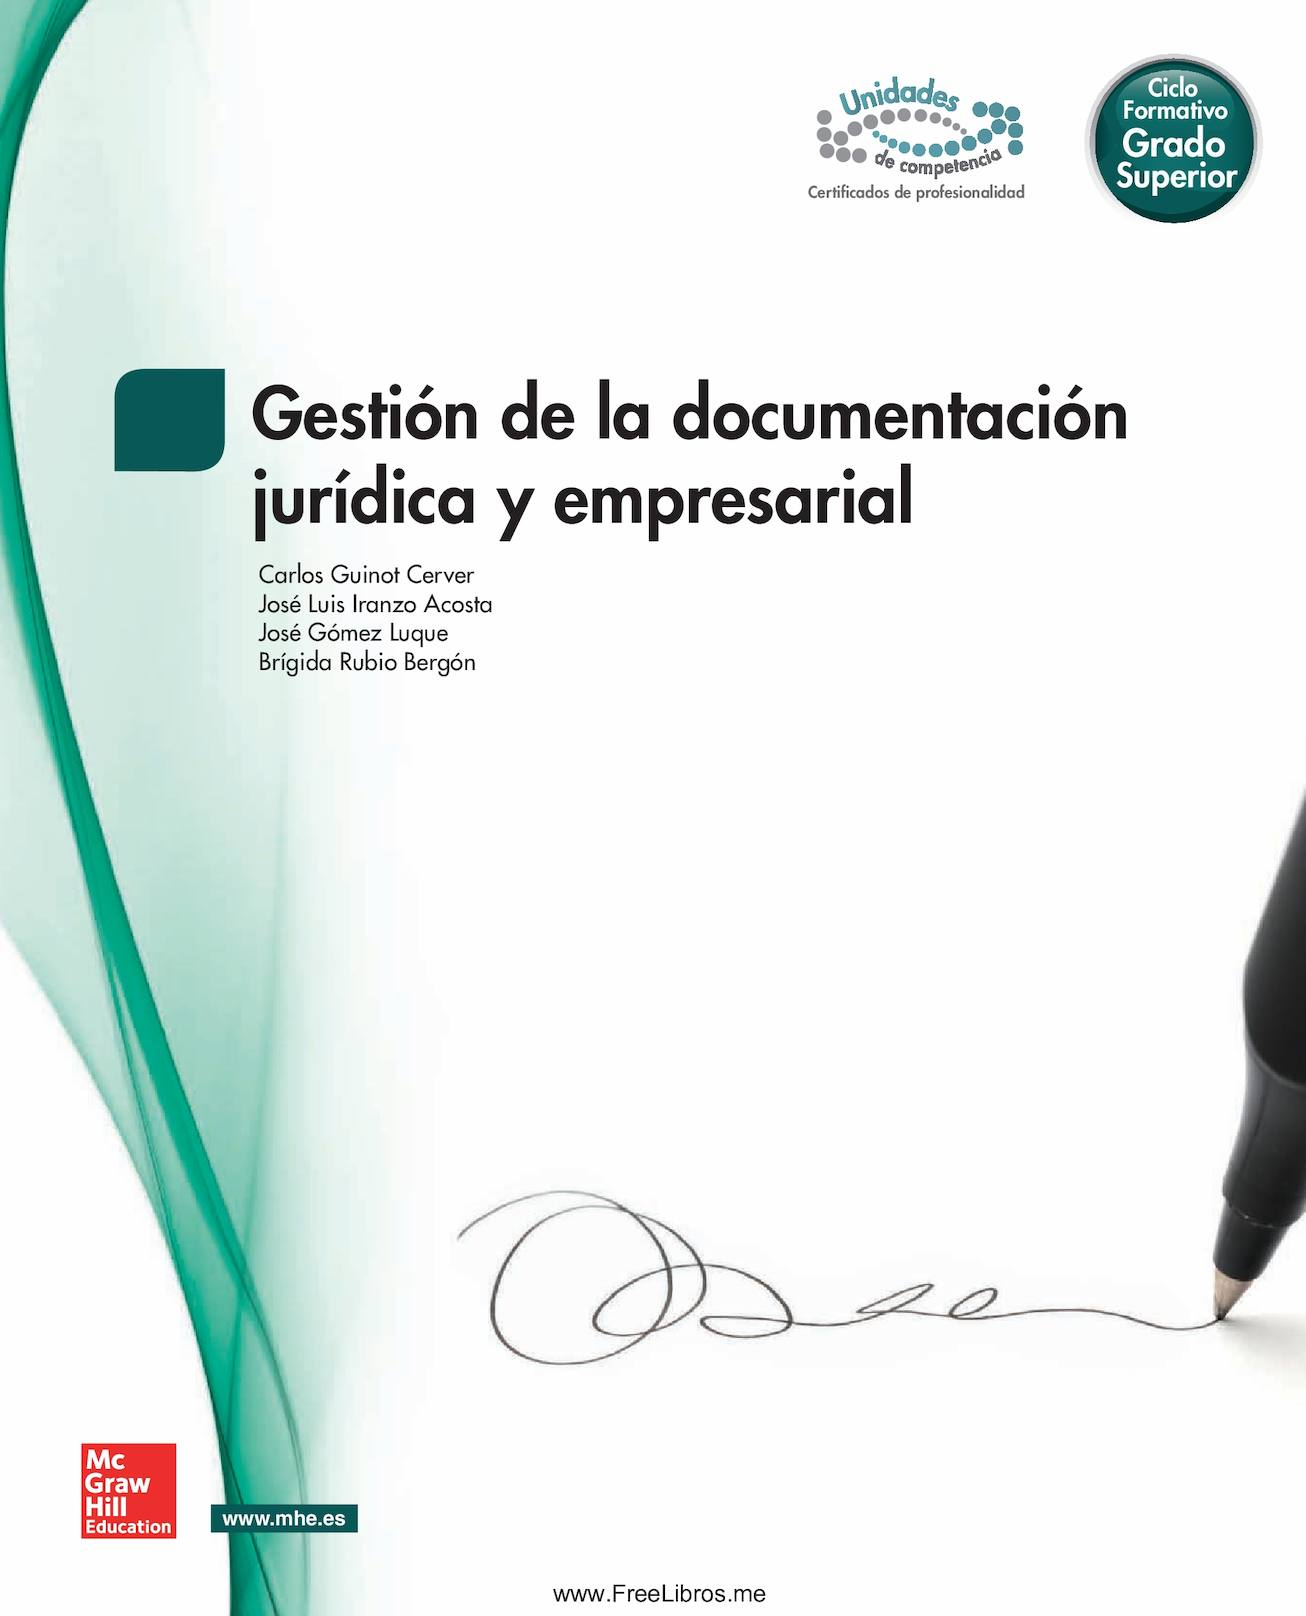 Descargar Libros Mc Graw Hill Pdf Gratis Gestion De La Documentacion Juridica Y Empresarial Mc Graw Hill